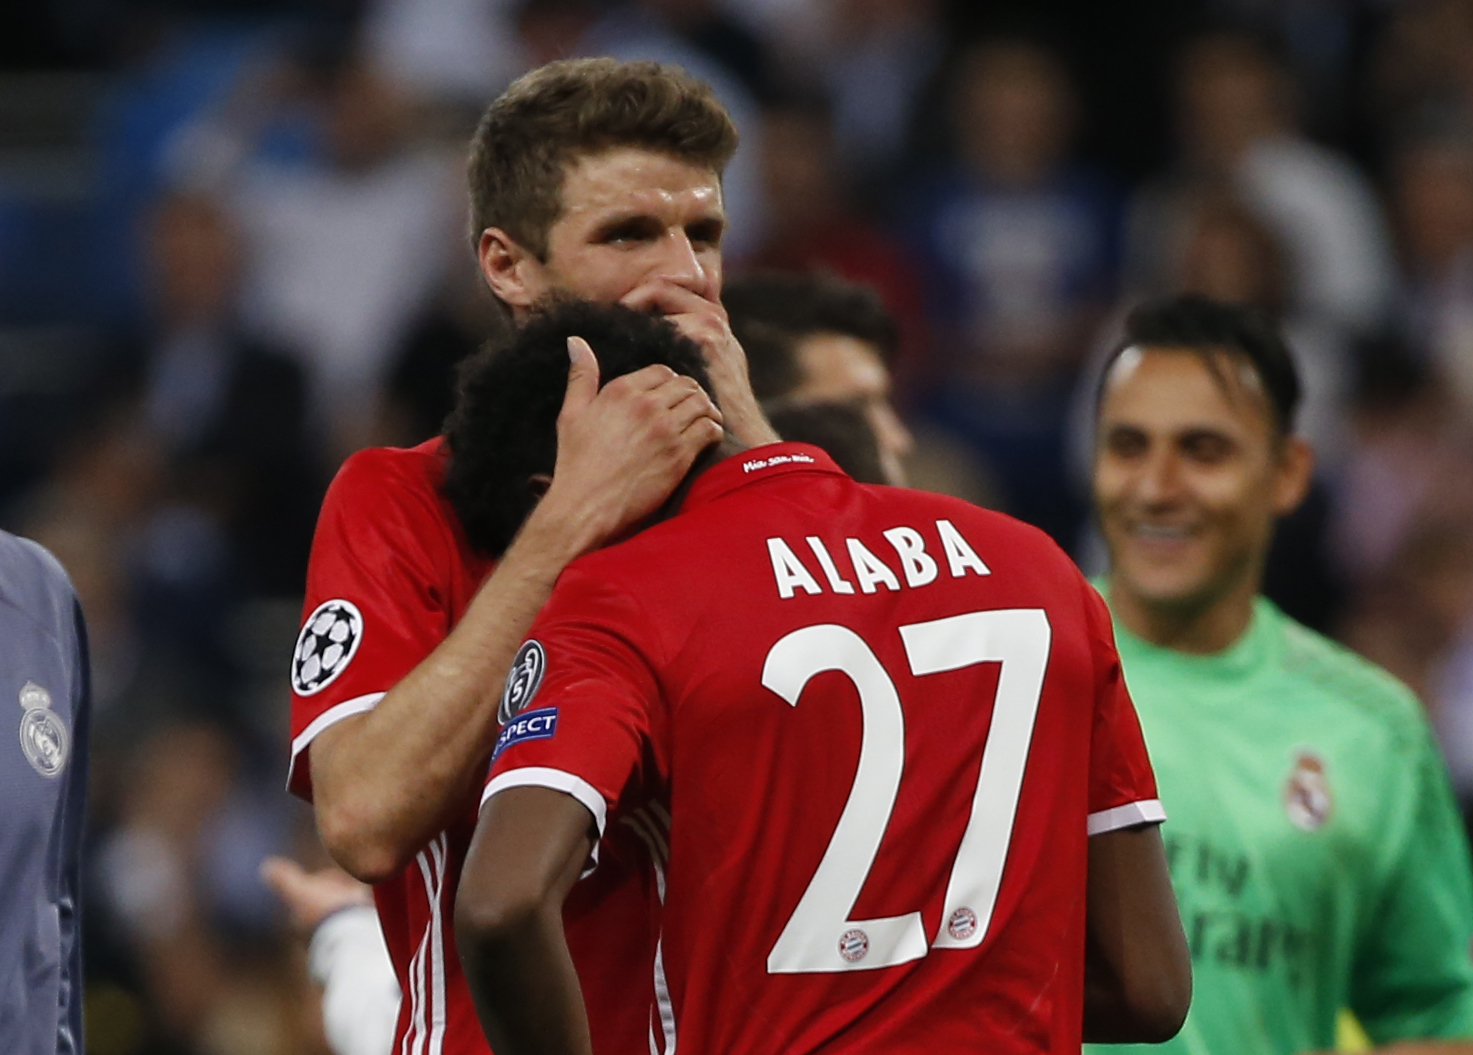 Football Soccer - Real Madrid v Bayern Munich - UEFA Champions League Quarter Final Second Leg - Estadio Santiago Bernabeu, Madrid, Spain - 18/4/17 Bayern Munich's Thomas Muller and David Alaba look dejected after the game Reuters / Susana Vera Livepic